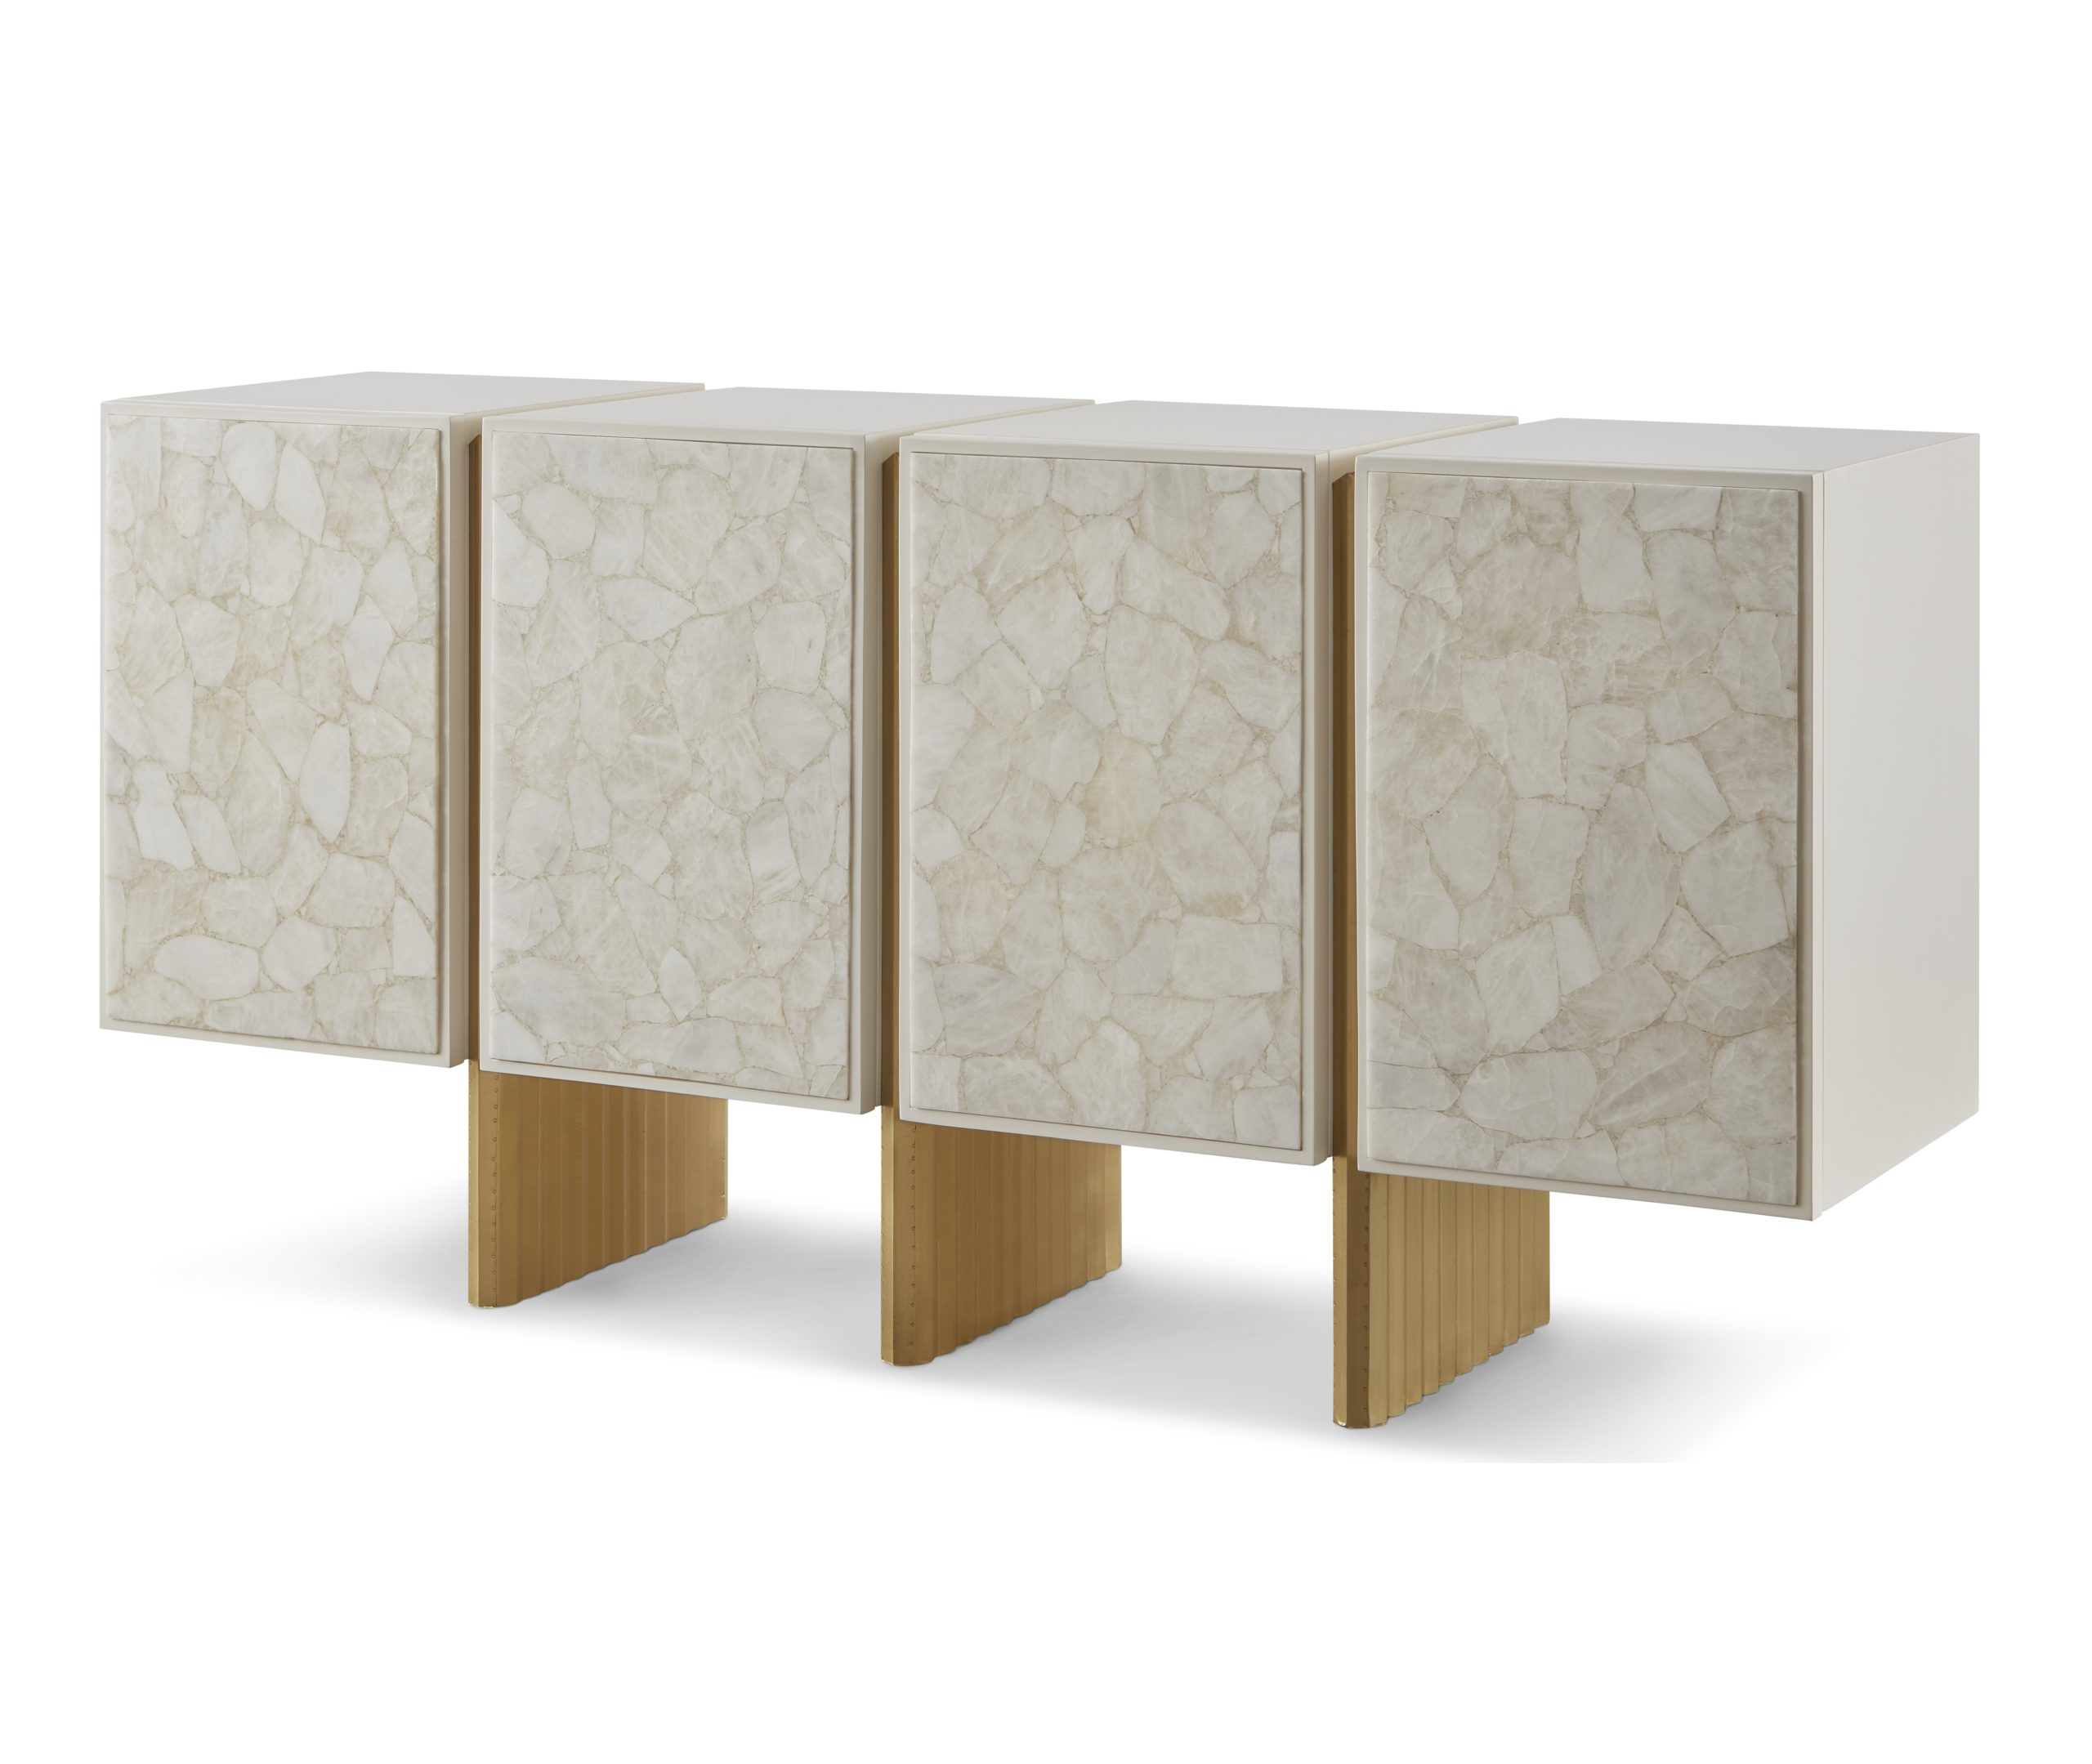 Baker_products_WNWN_kira_credenza_BAA3028_FRONT_3QRT-scaled-1